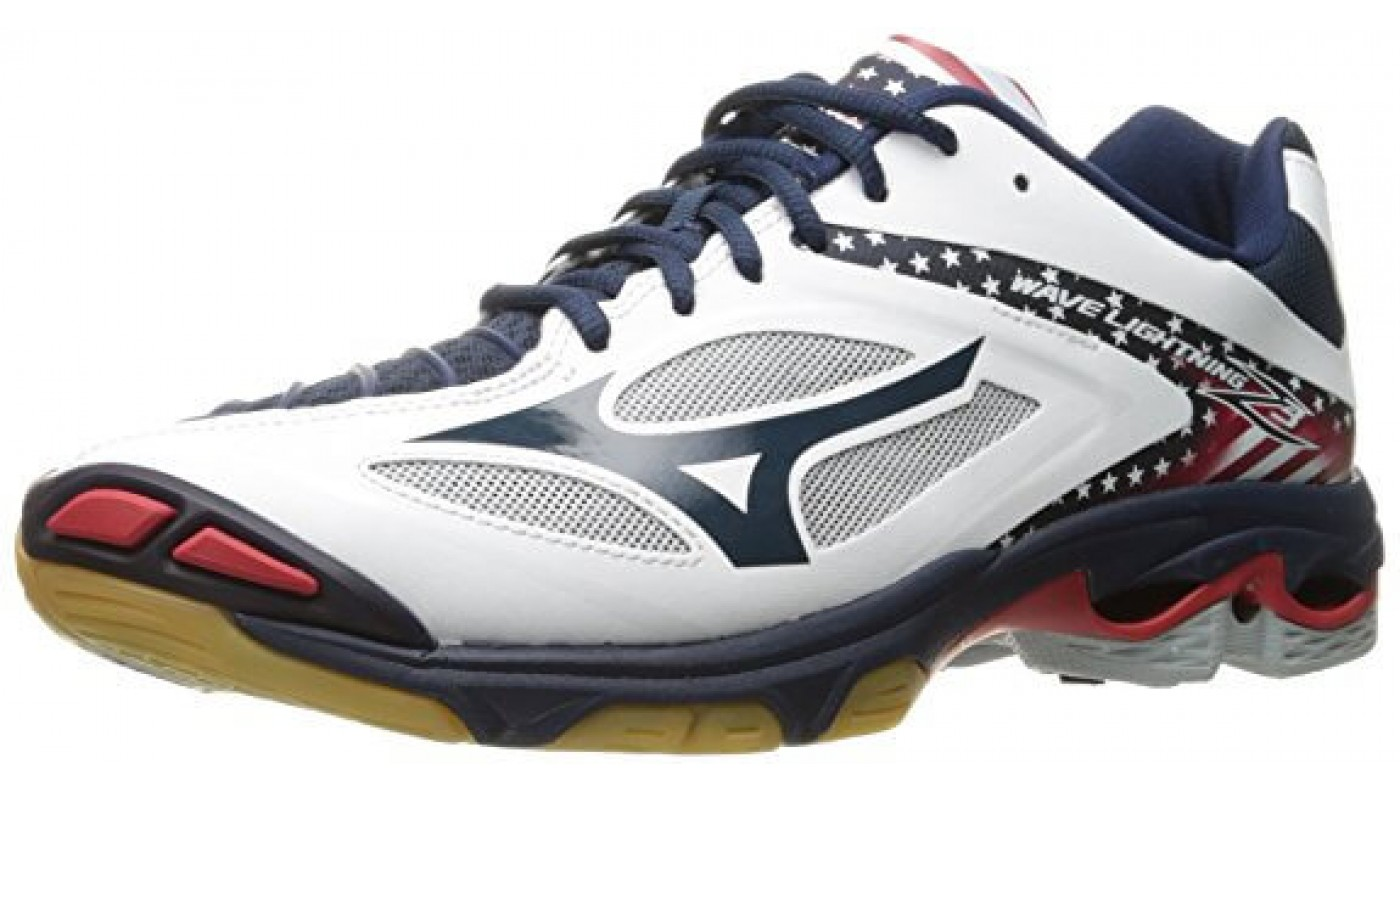 The Mizuno Wave Lightning Z3 provides stability for side to side movements